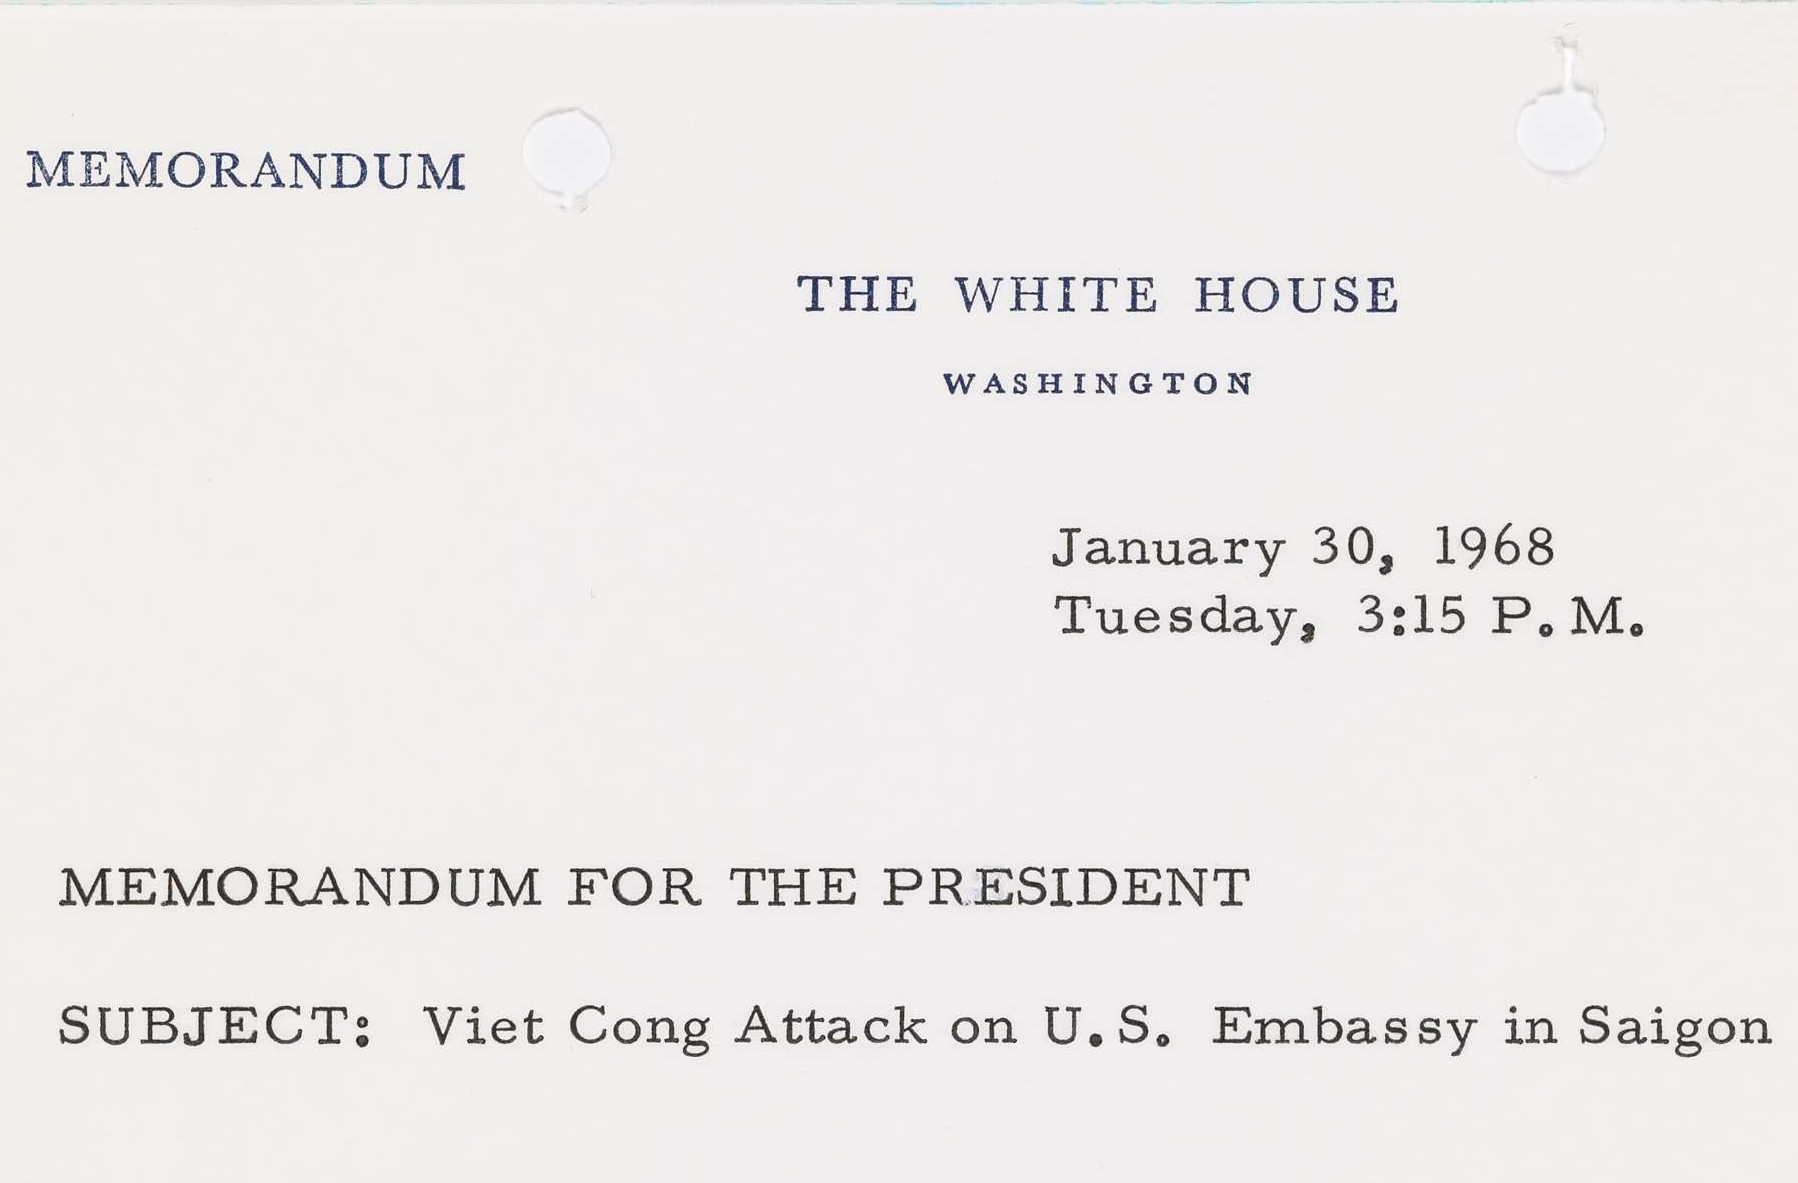 Memo from Walt W. Rostow to President Johnson